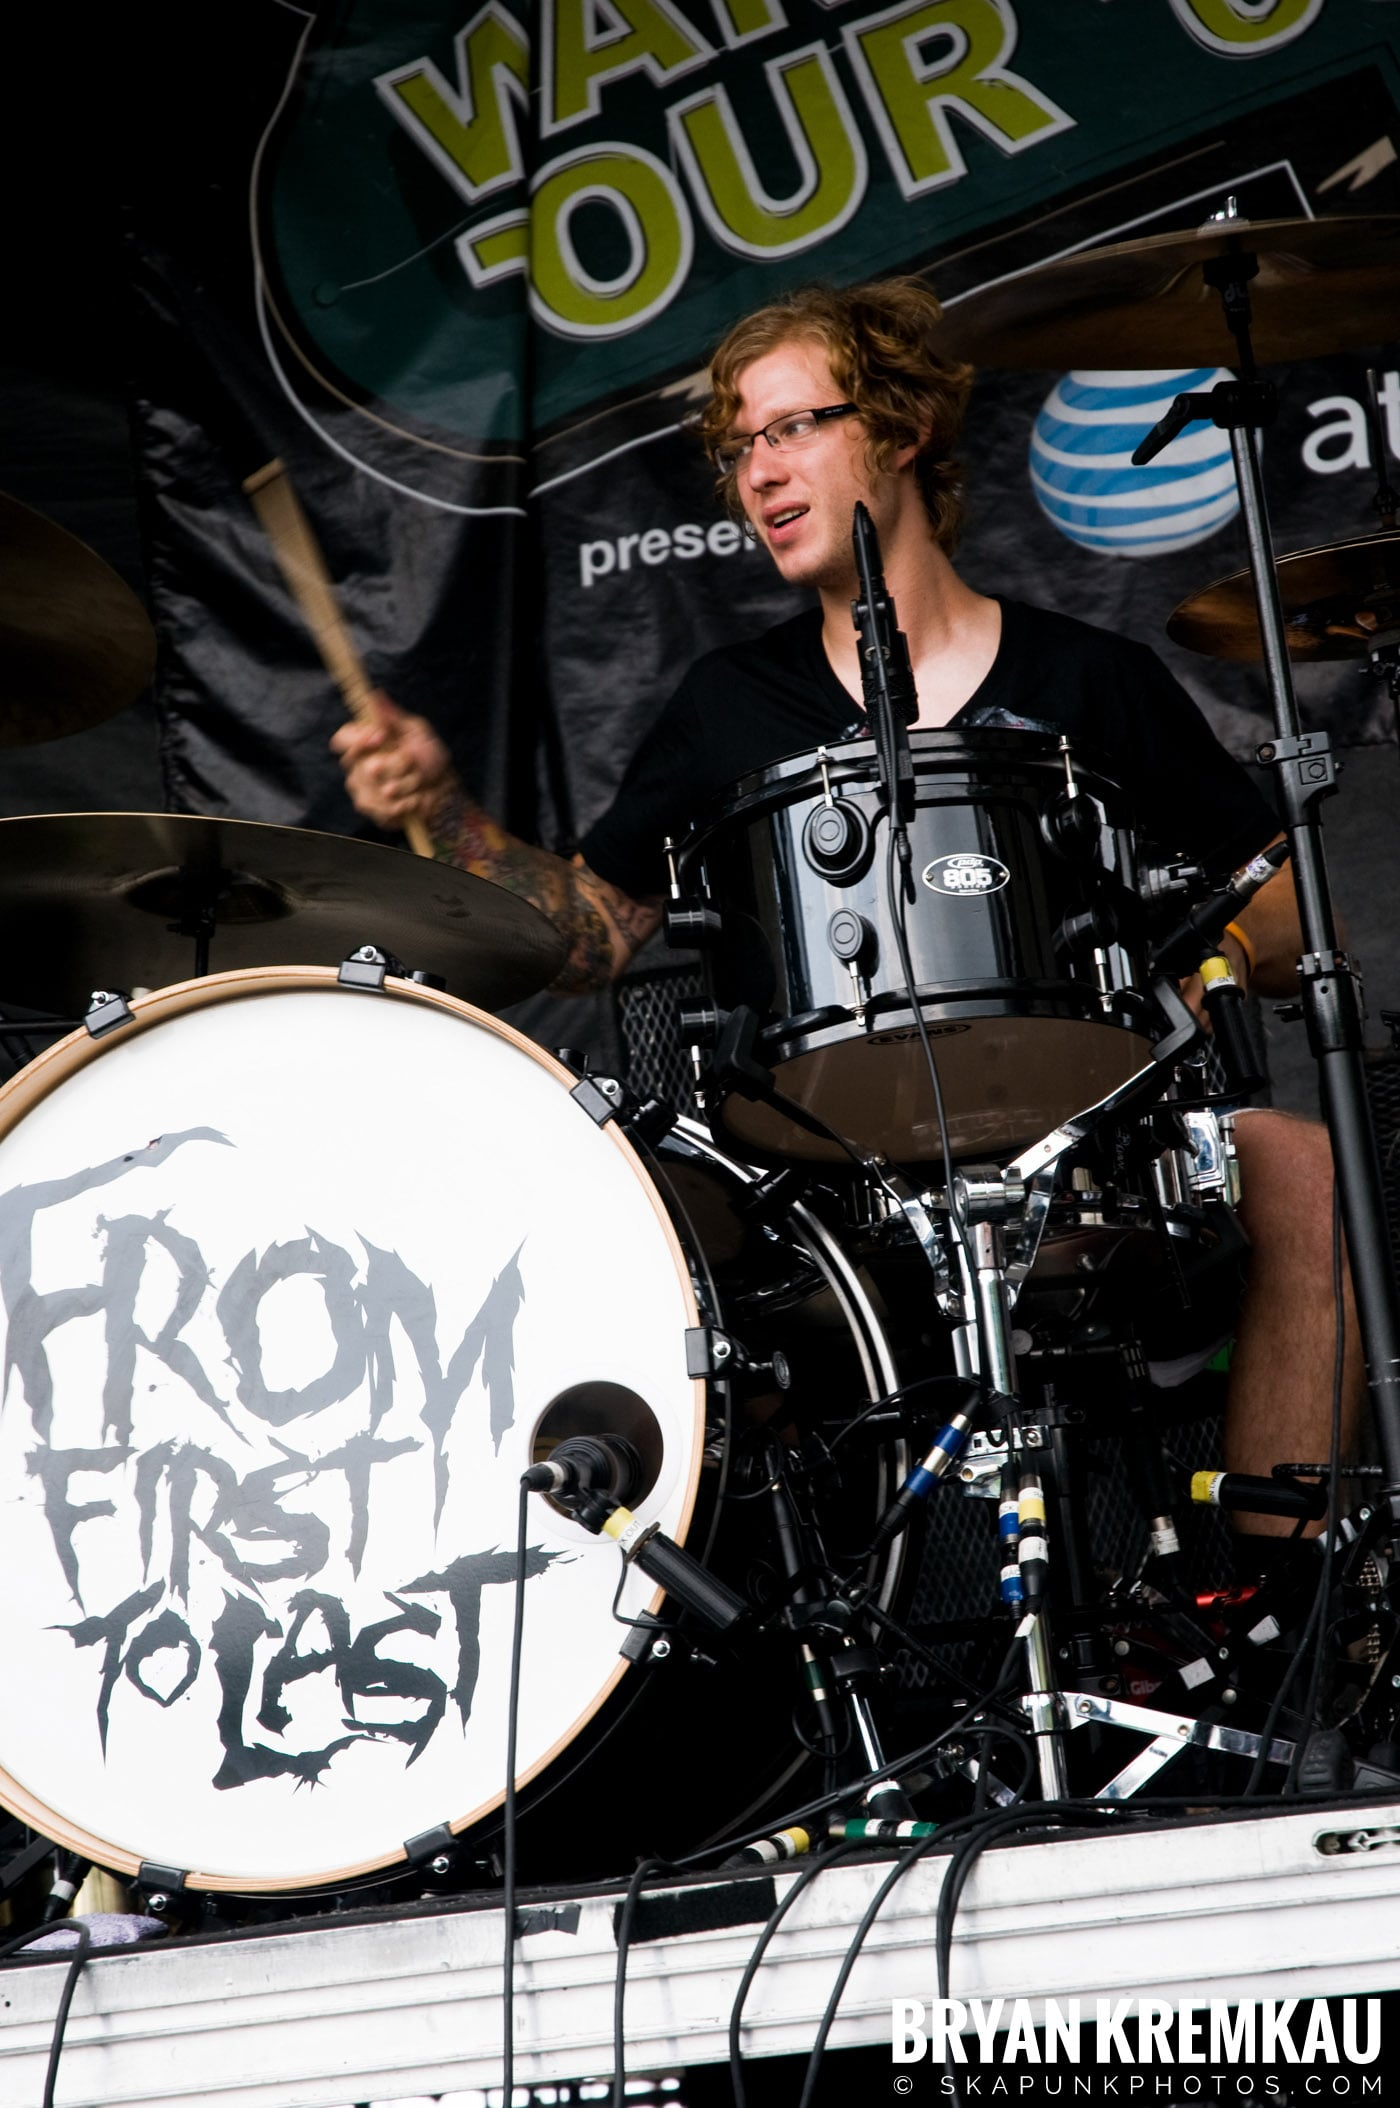 From First To Last @ Warped Tour 08, Scranton PA - 7.27.08 (8)